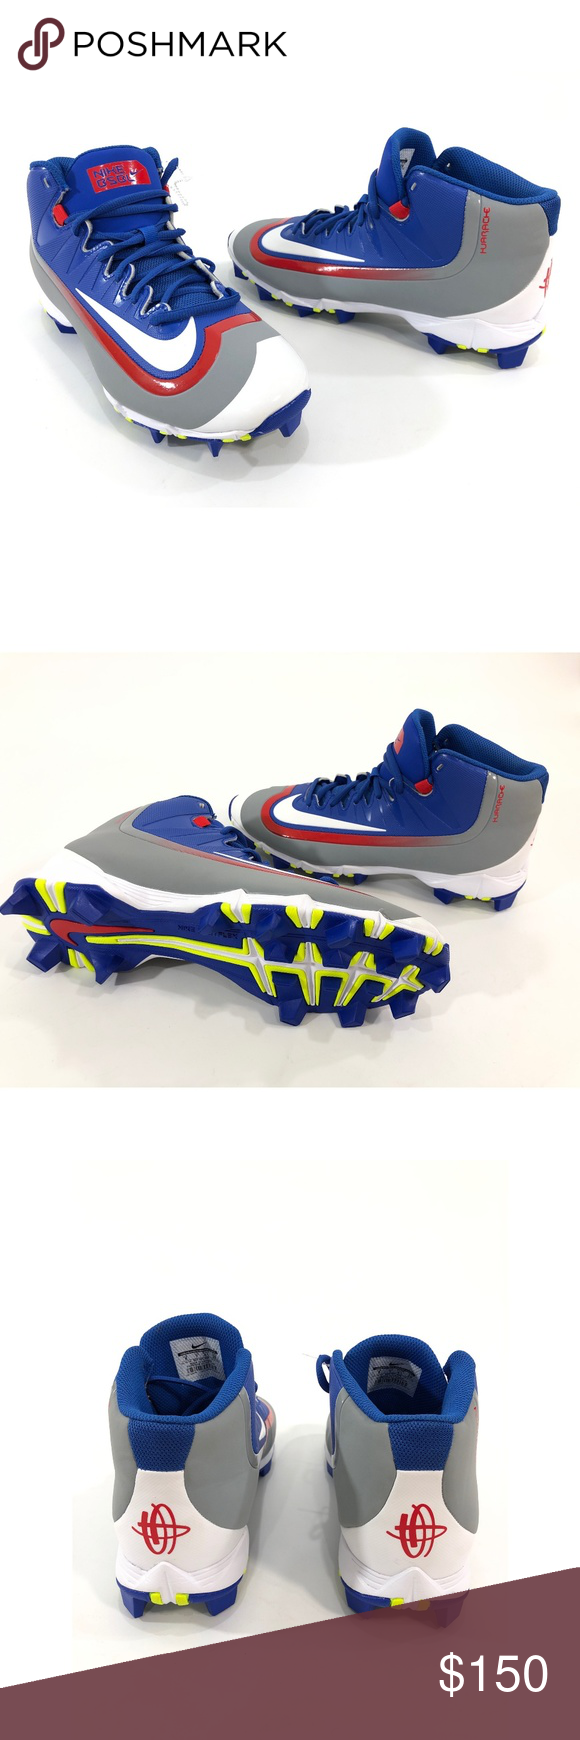 fa4c28d71 Nike Huarache Mid Molded Men s Baseball Cleats NIKE 807141-460 Nike  Huarache Mid Molded Men s baseball cleats Size 7.5 and 8 Blue   White   Red  High top New ...